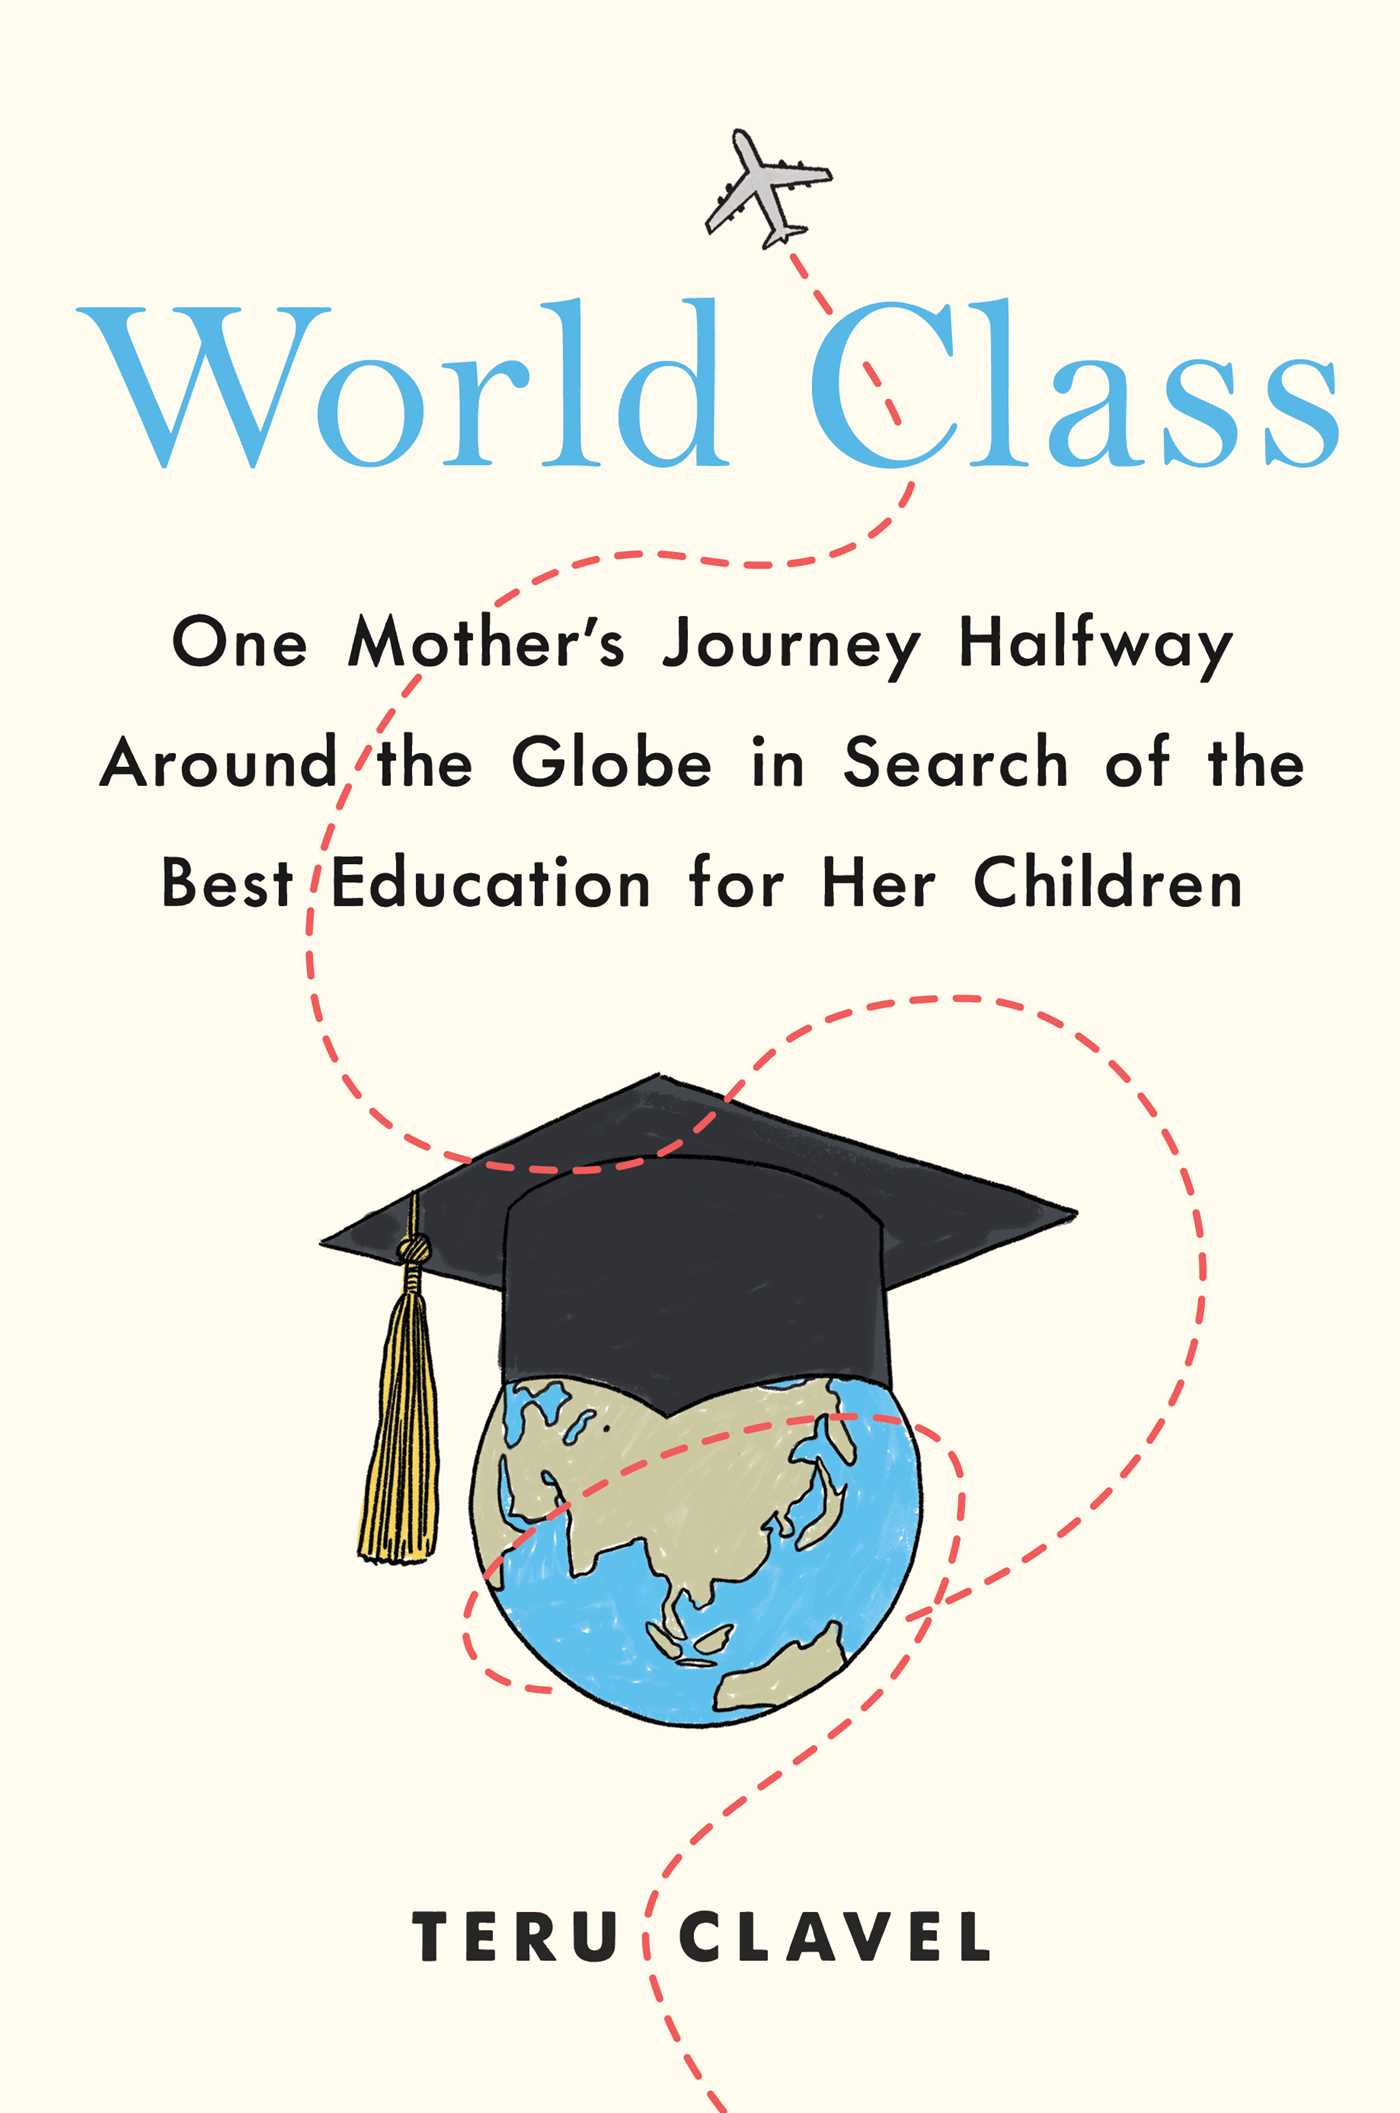 World Class: One Mother's Journey Halfway Around the Globe in Search of the Best Education for Her Children